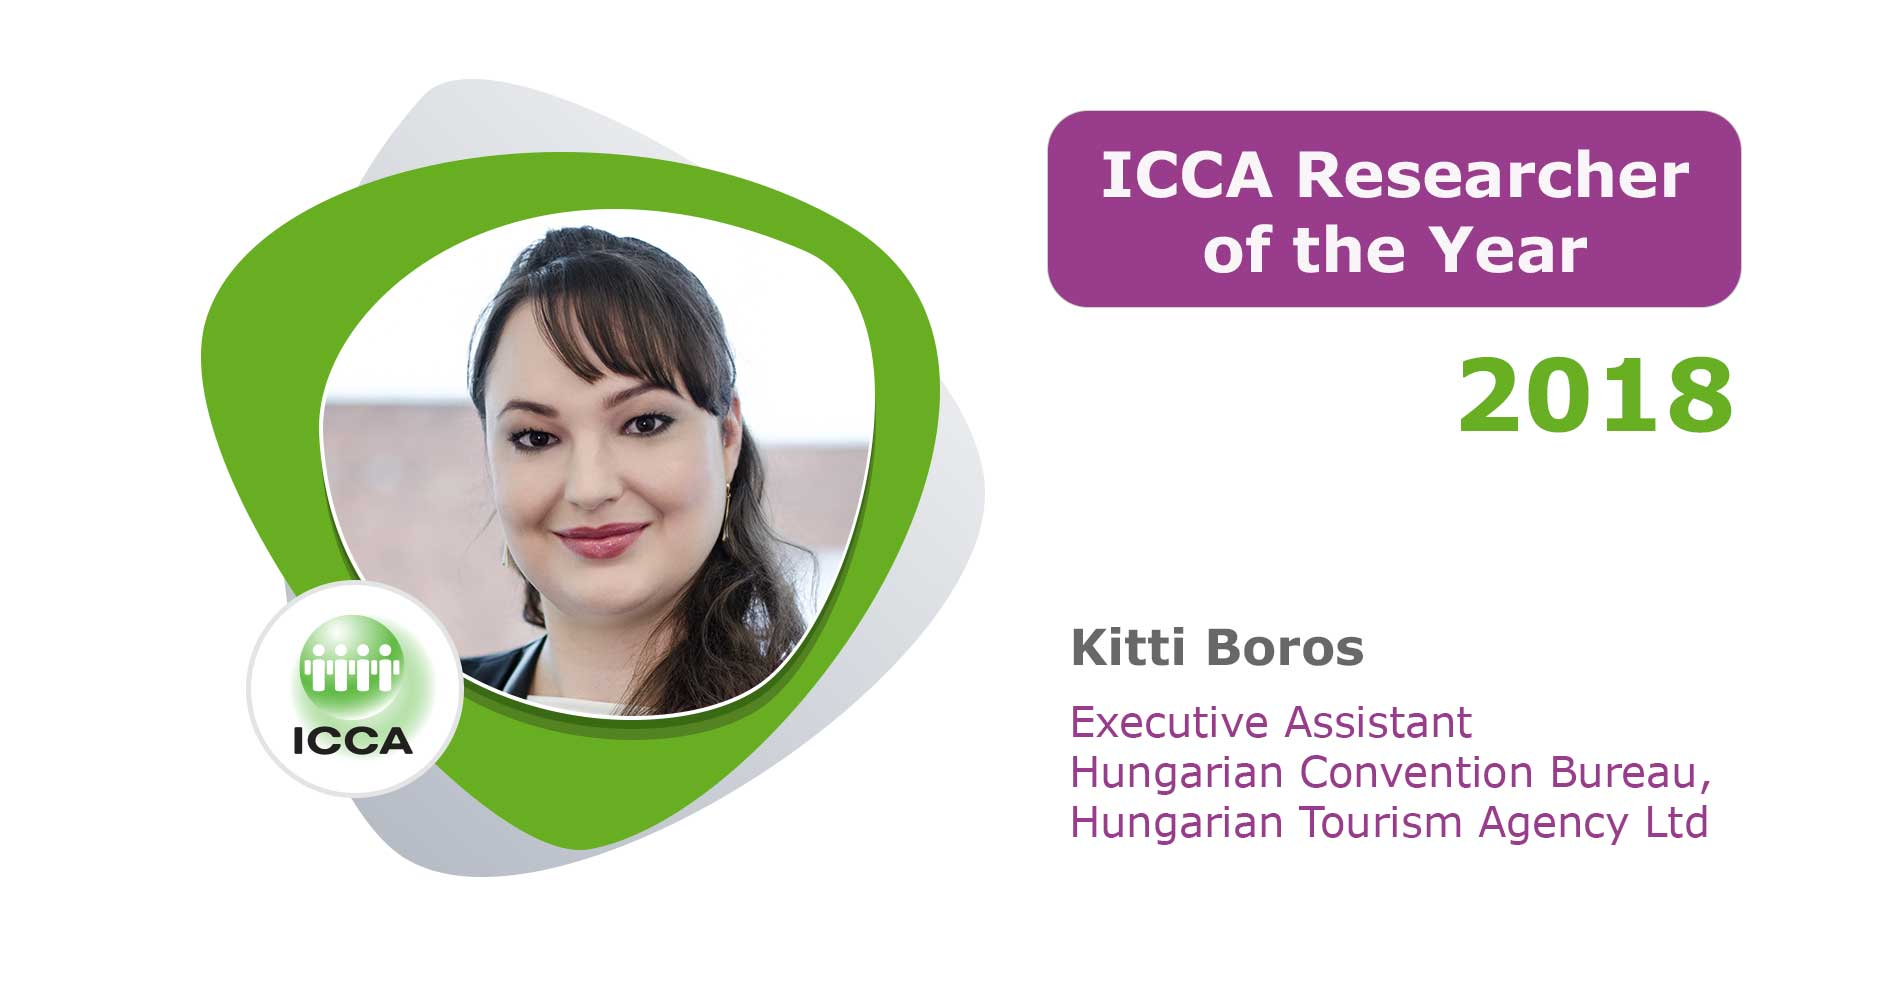 To recognise this year's top ICCA Data Provider, it gives us great pleasure to announce that Kitti Boros, Executive Assistant, Hungarian Convention Bureau, Hungarian Tourism Agency Ltd, has been chosen as